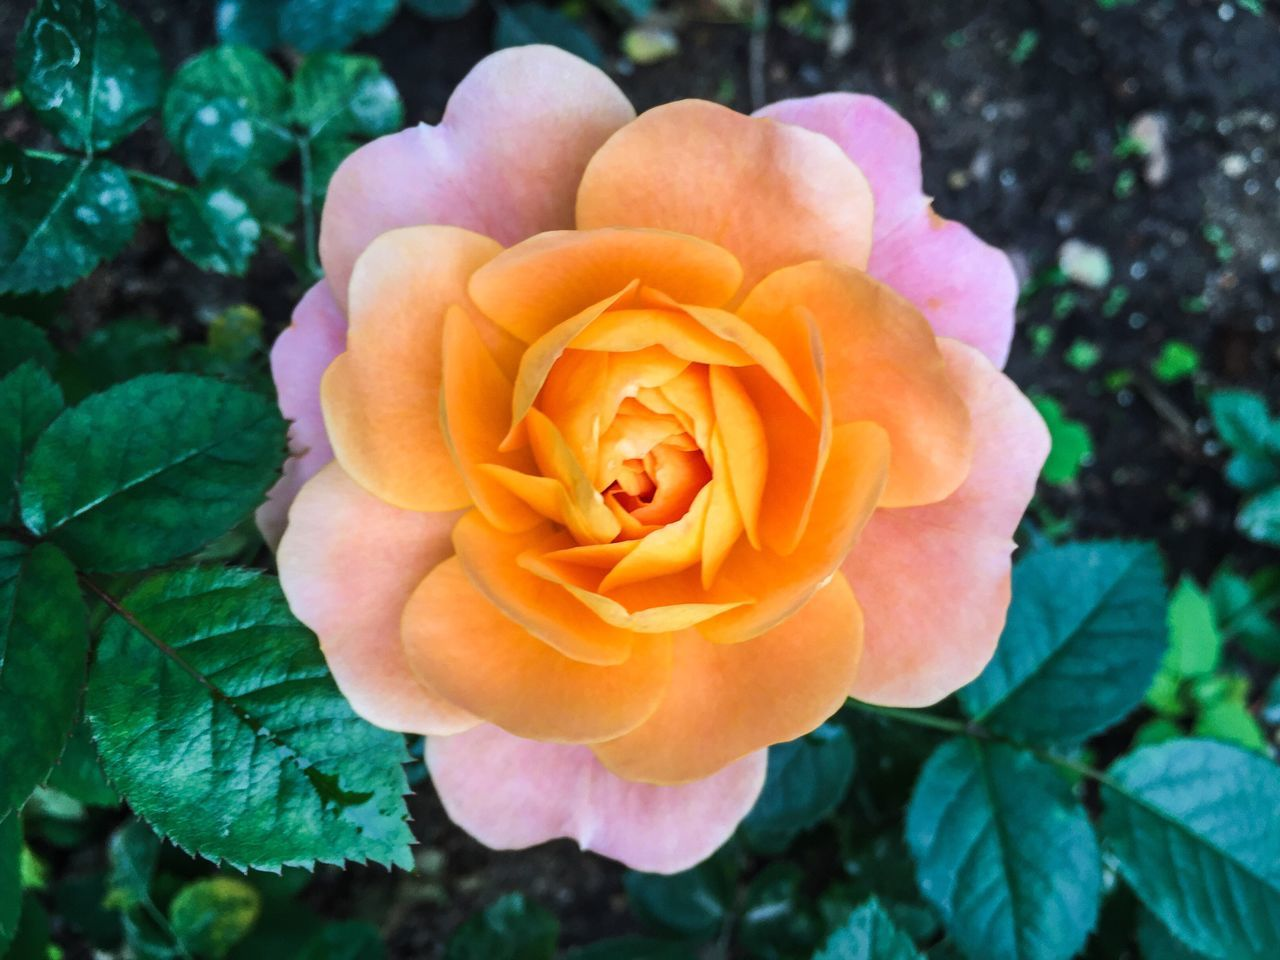 flower, petal, plant, flower head, nature, rose - flower, fragility, beauty in nature, outdoors, leaf, growth, close-up, no people, blooming, freshness, day